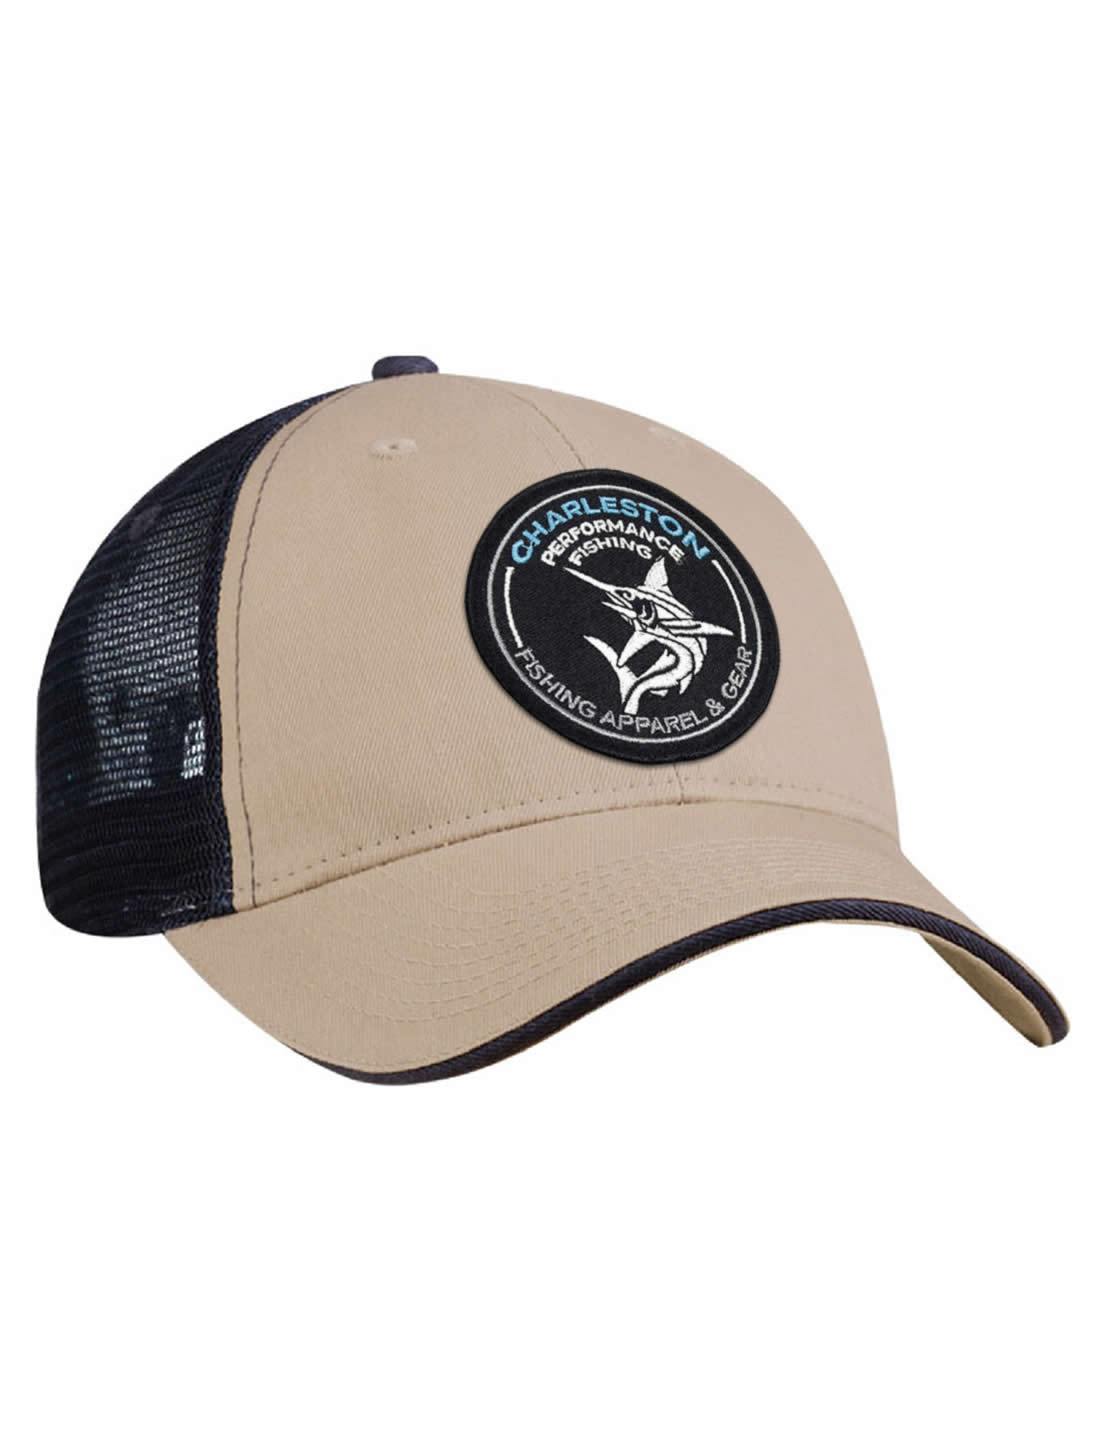 c87a2dbe7f960 Tribal Marlin Khaki and Navy Blue Mesh Back Fishing Hat - CPF Gear